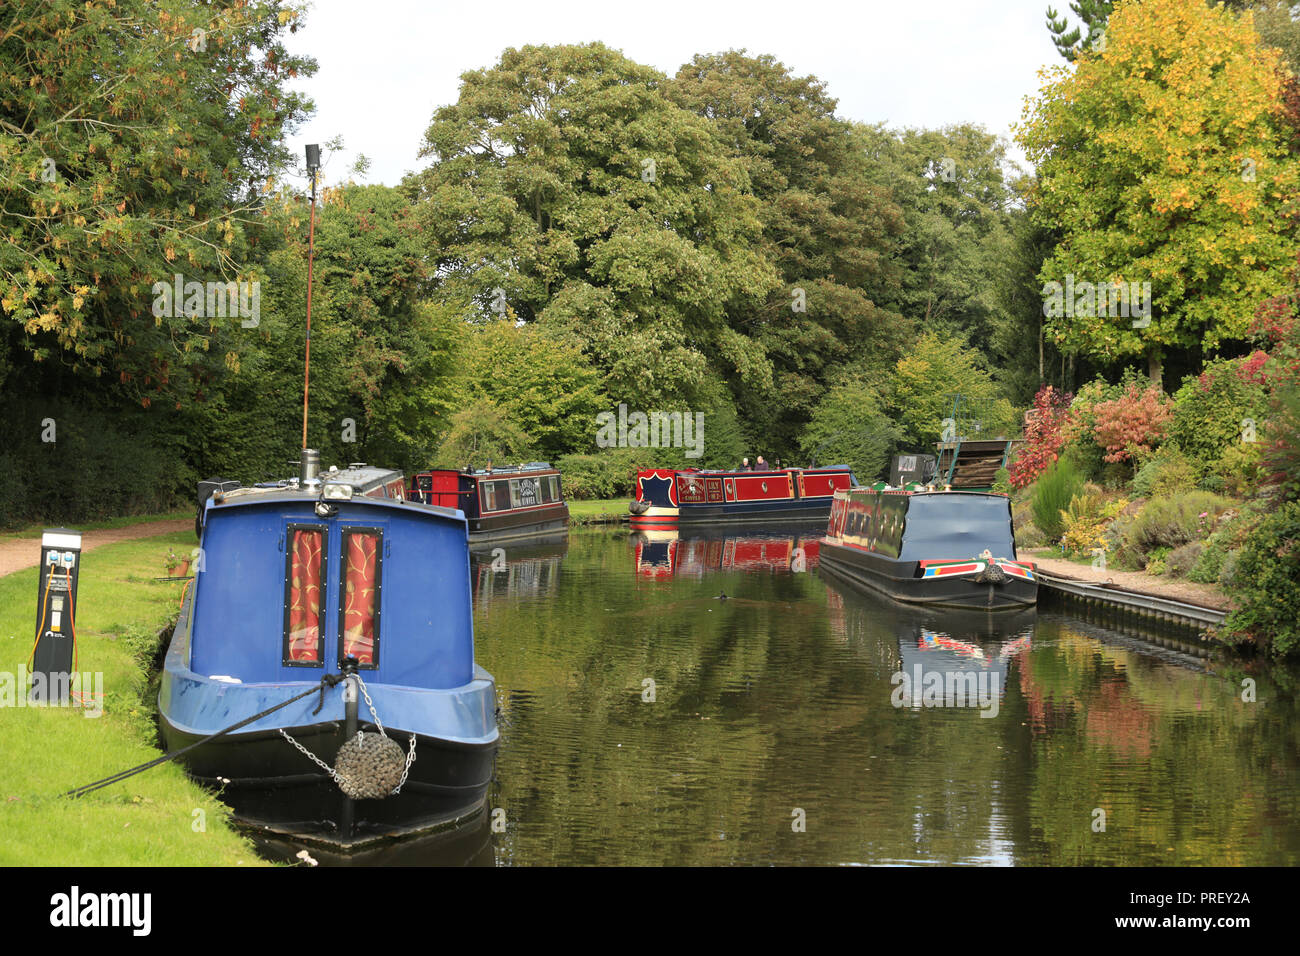 Narrow boats moored on the Staffordshire and Worcestershire canal near Kinver, Staffordshire, England, UK. Stock Photo